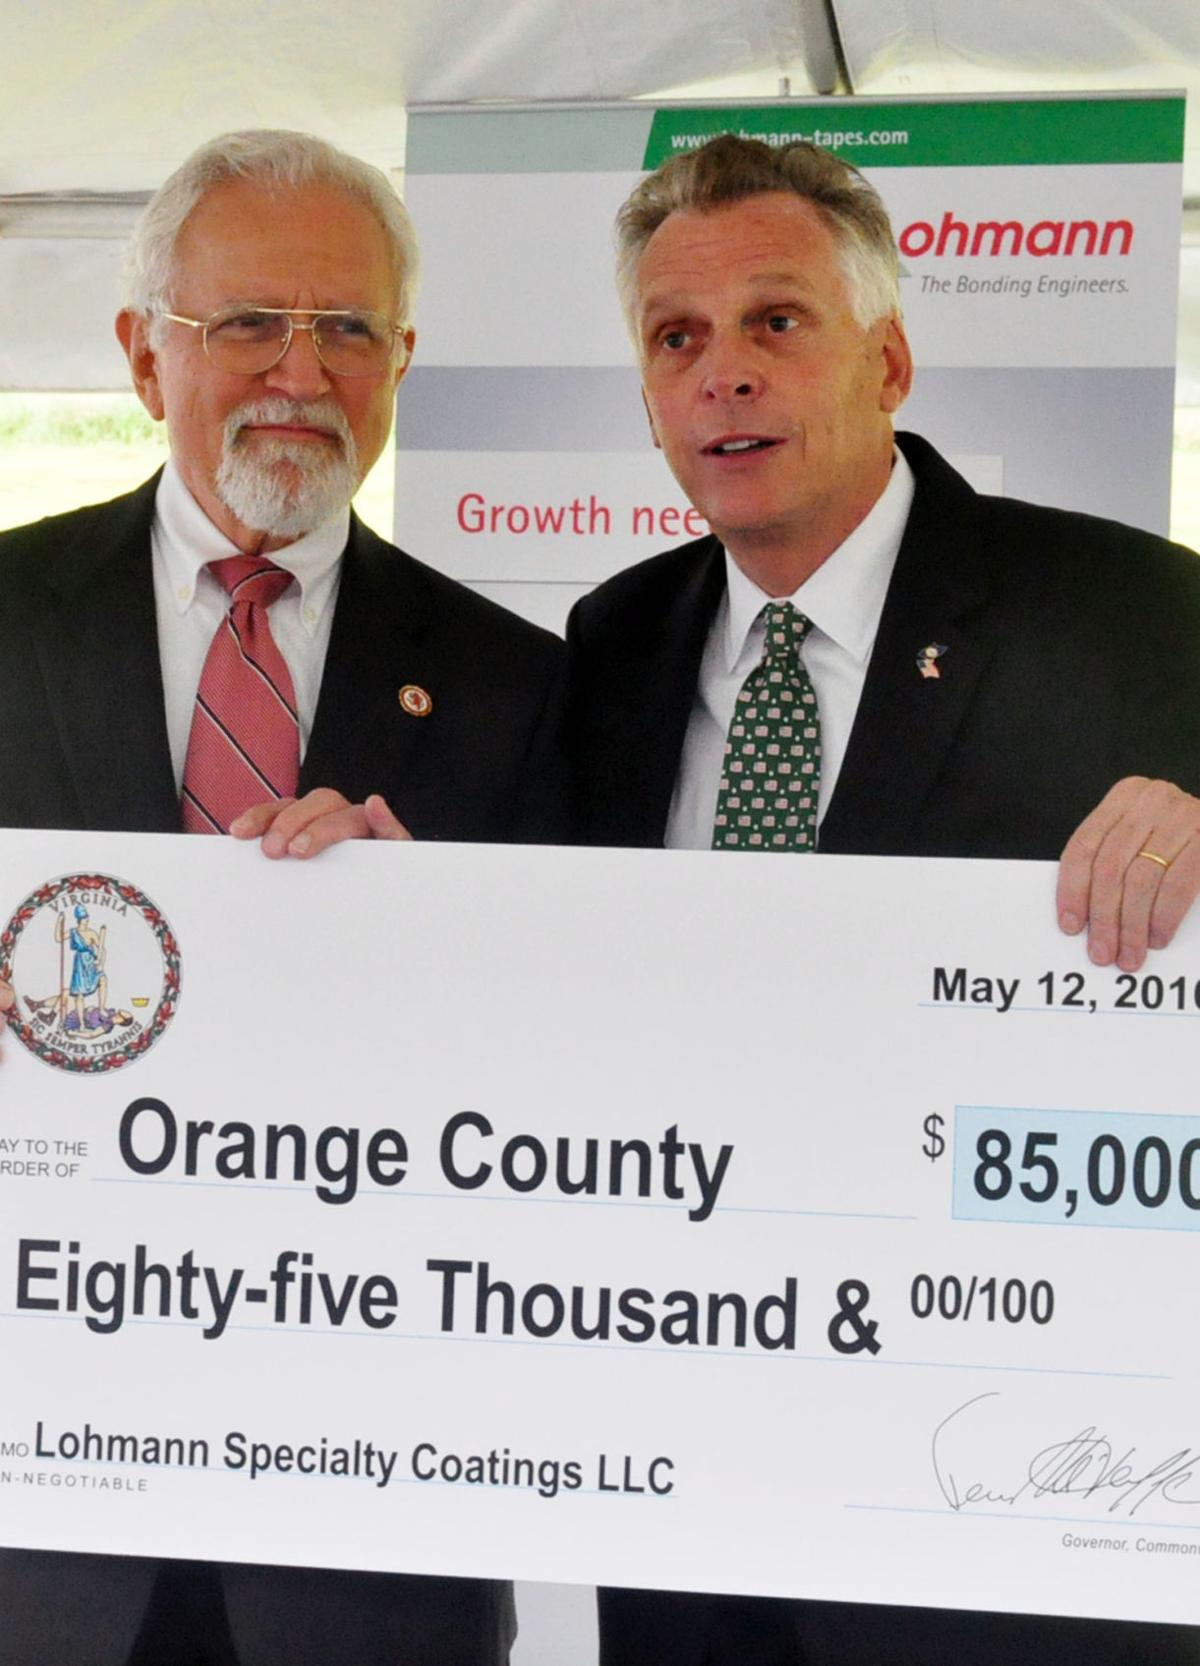 orange county business to add 56 jobs construct new building cse 0513 governor frame jpg